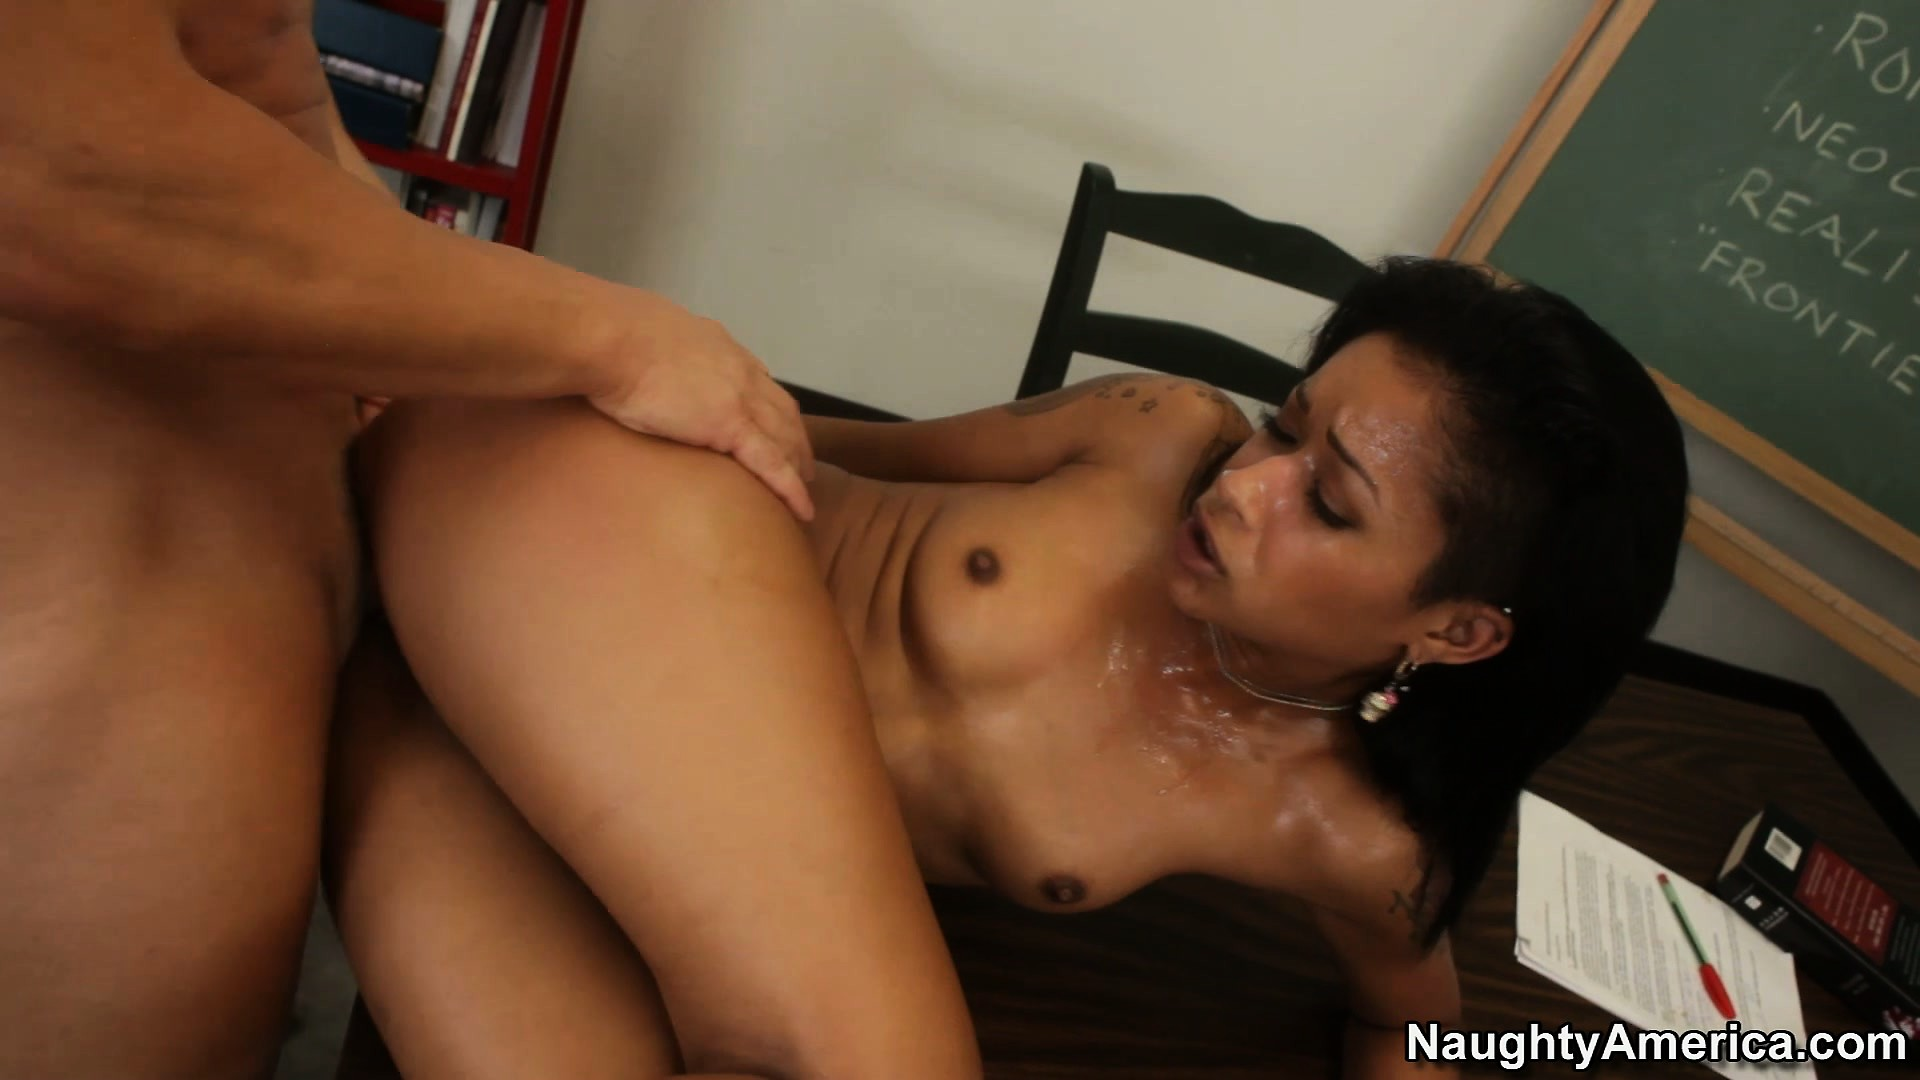 Porn Tube of Skin Diamond Shows Off Her Rib Cage During An Acrobatic Display